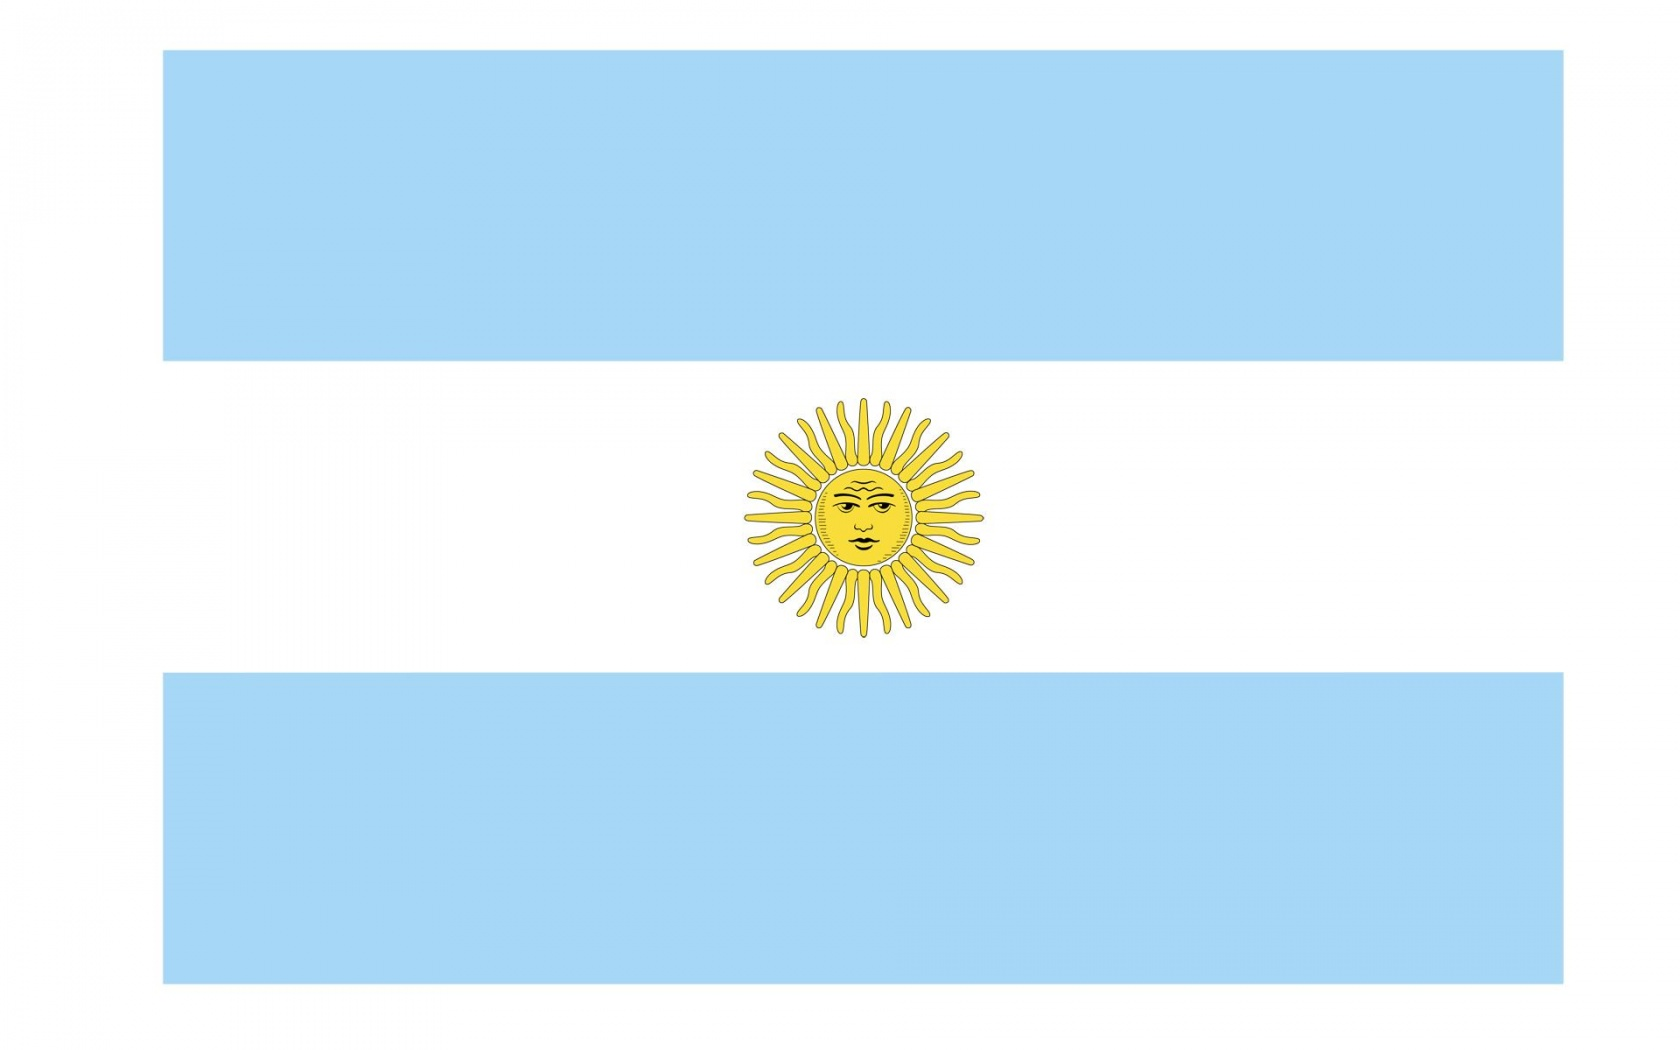 Flag Of Argentina Backgrounds on Wallpapers Vista